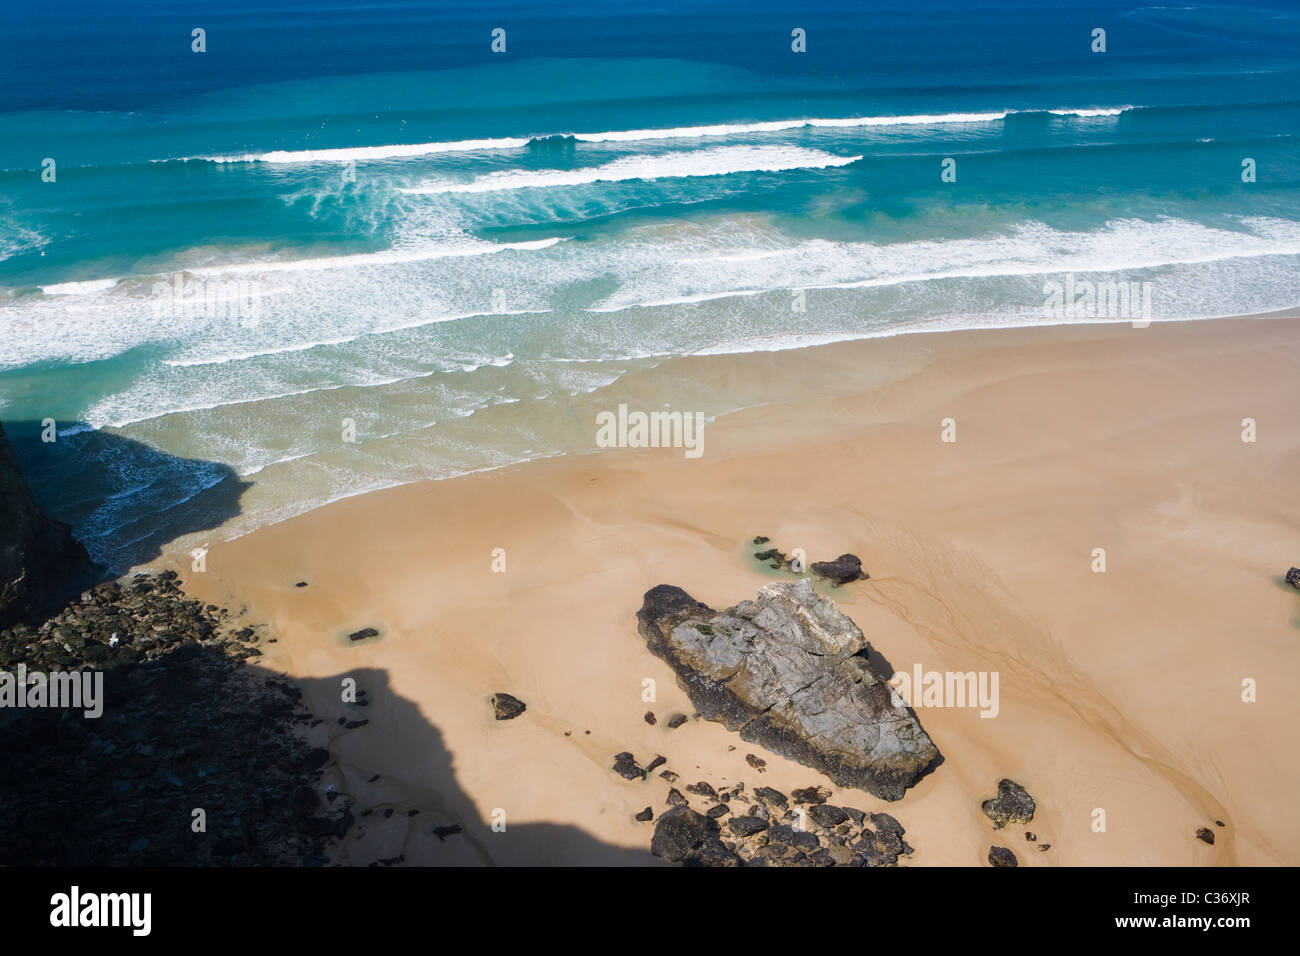 Waves and beach. Bedruthan Steps, Cornwall, UK - Stock Image